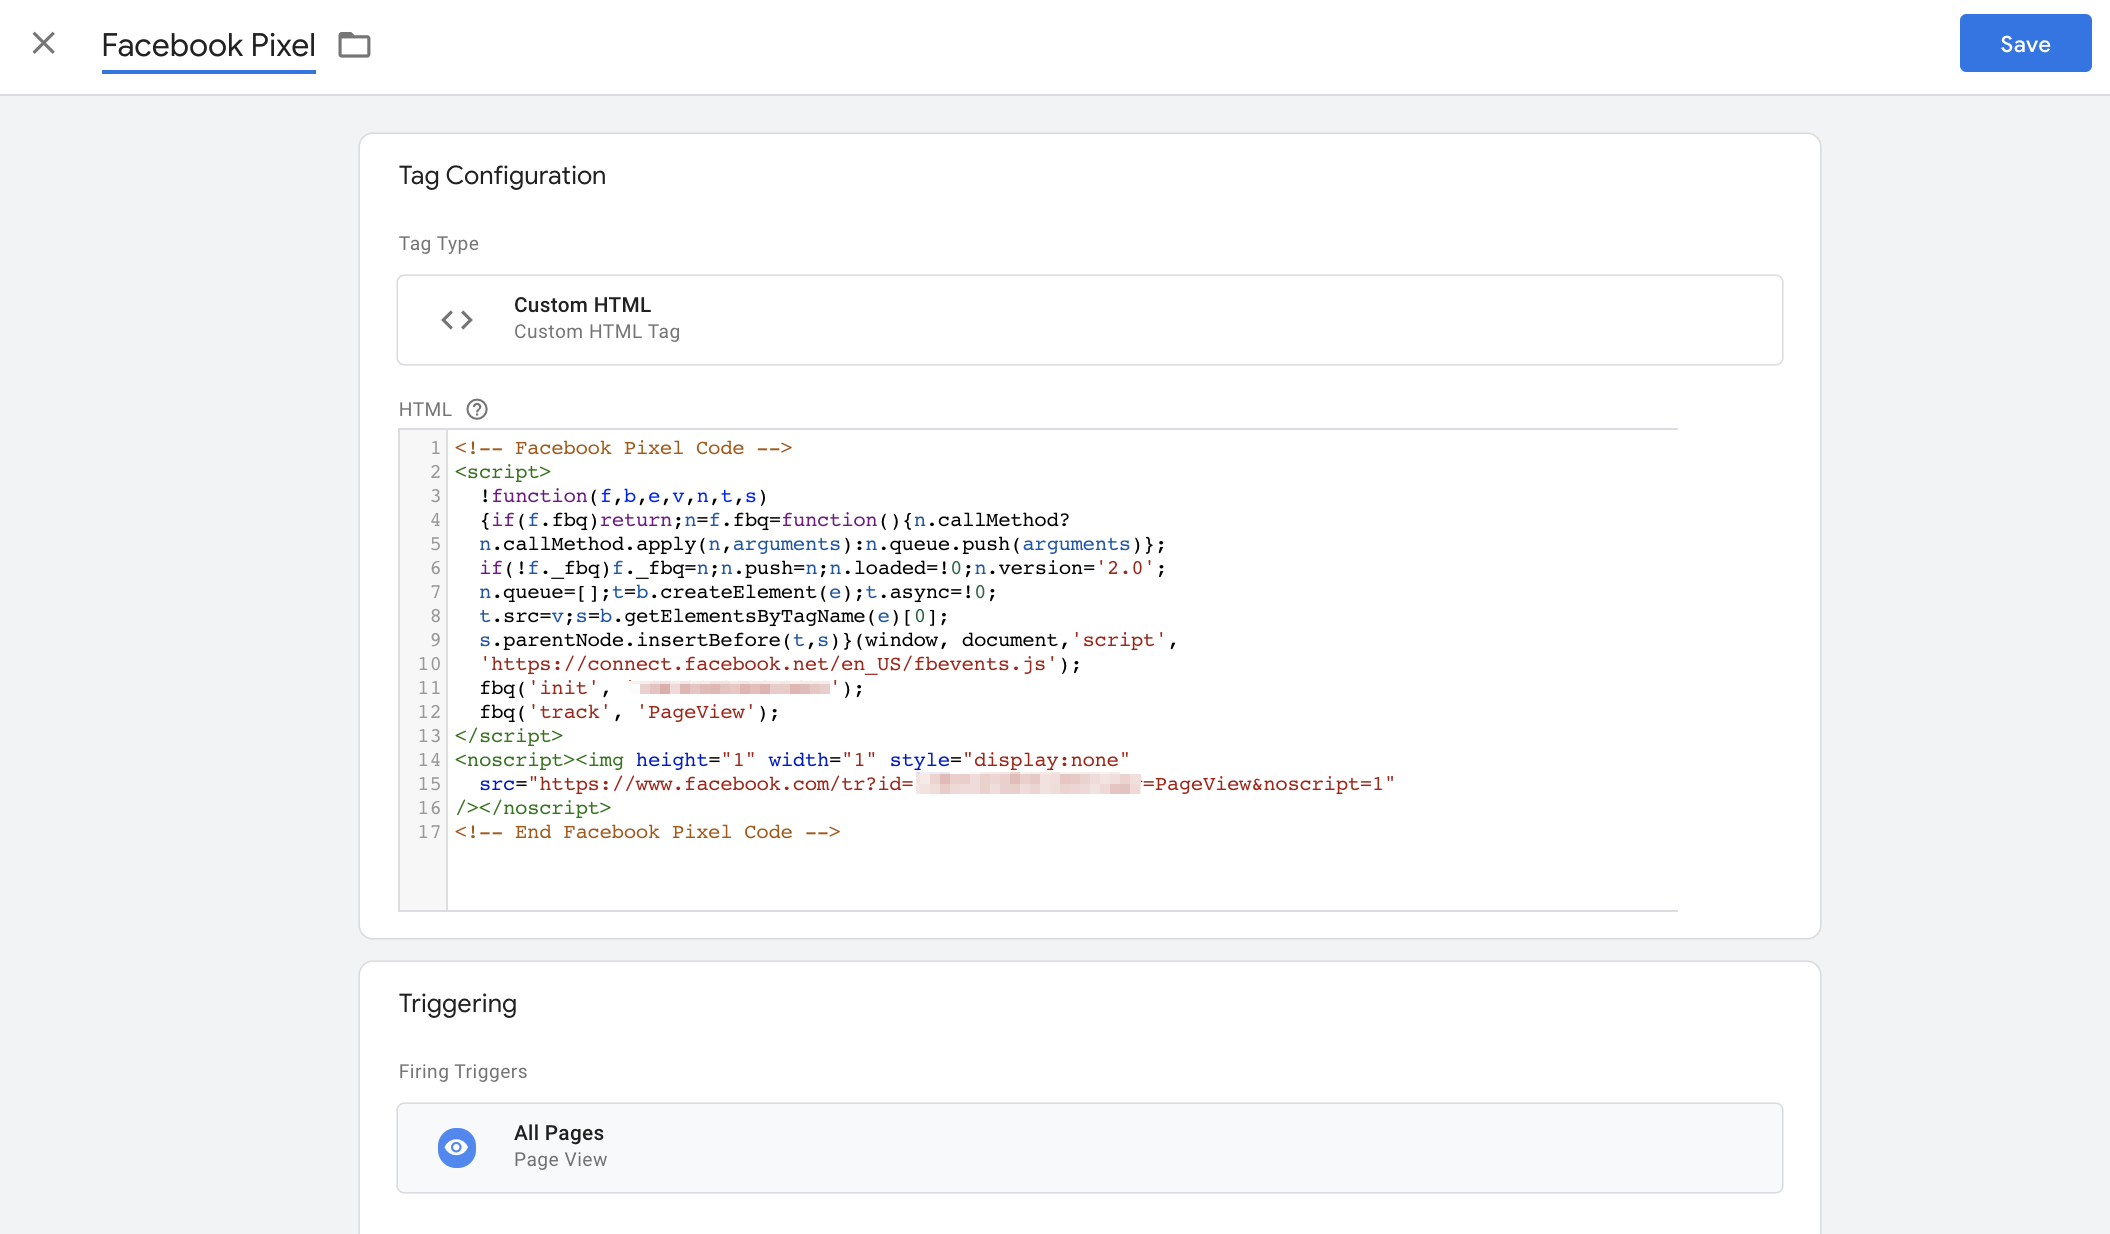 Adding the Facebook Pixel in Google Tag Manager